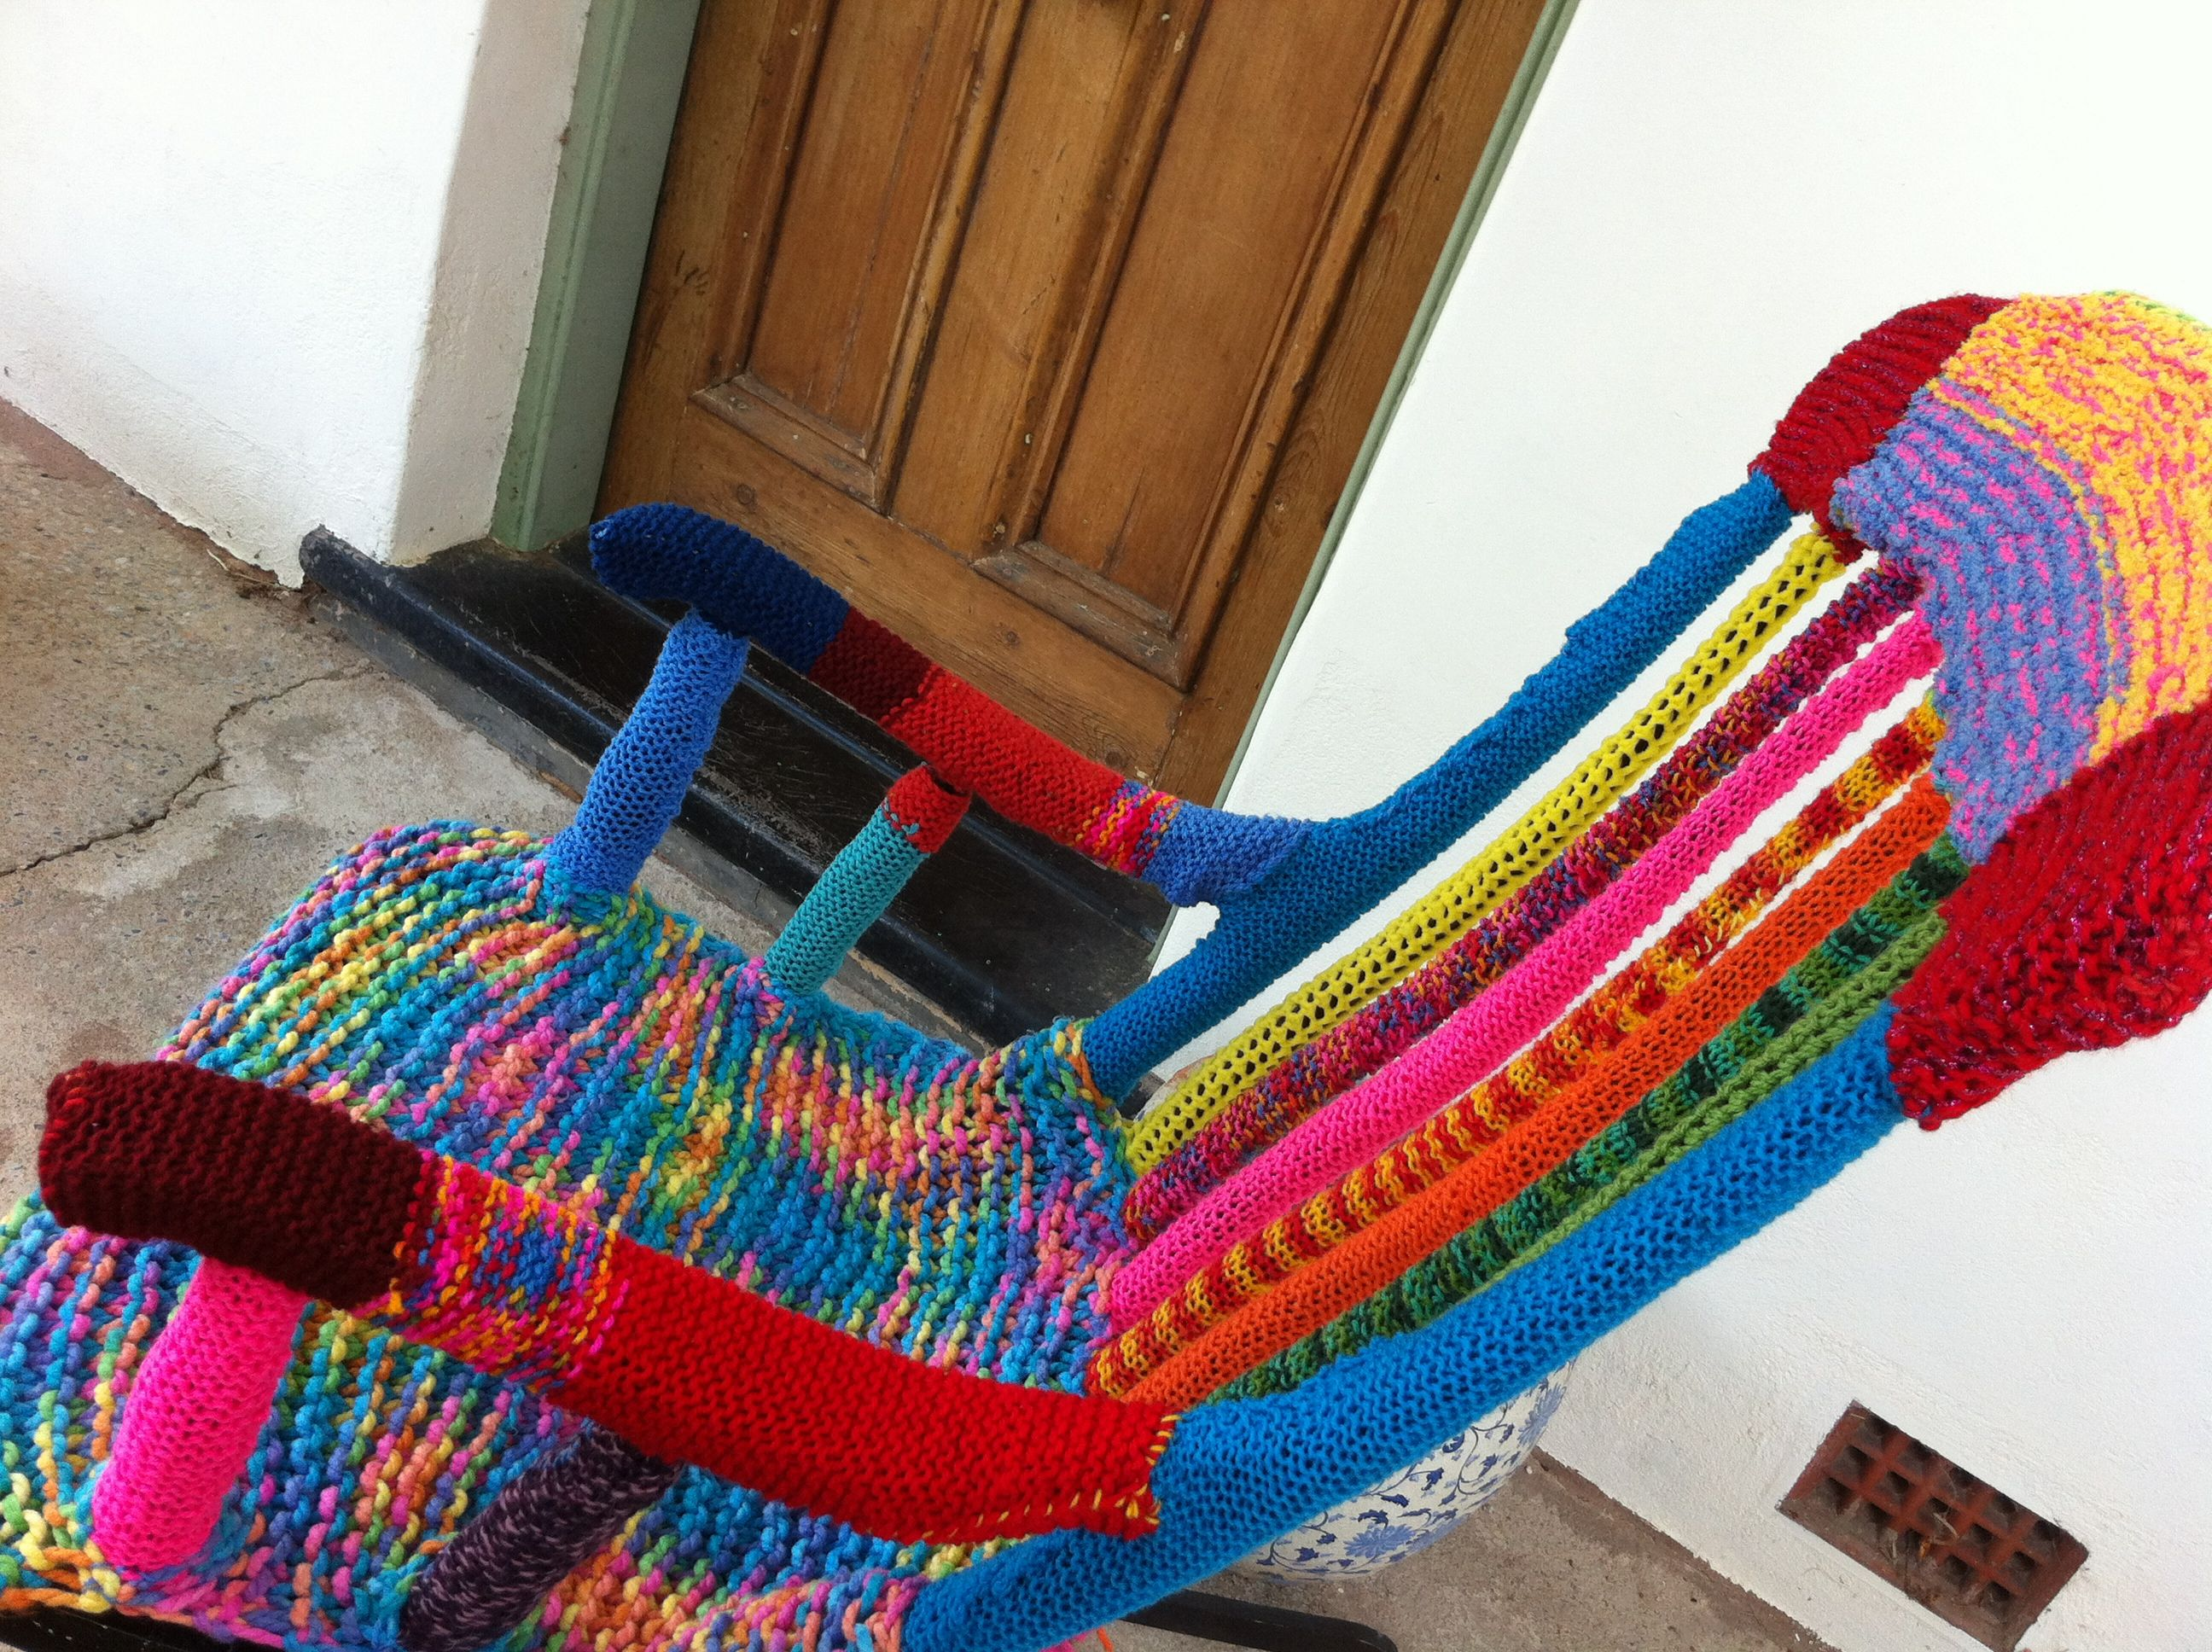 ROCKING THE YARN BOMB | YARN BOMBING